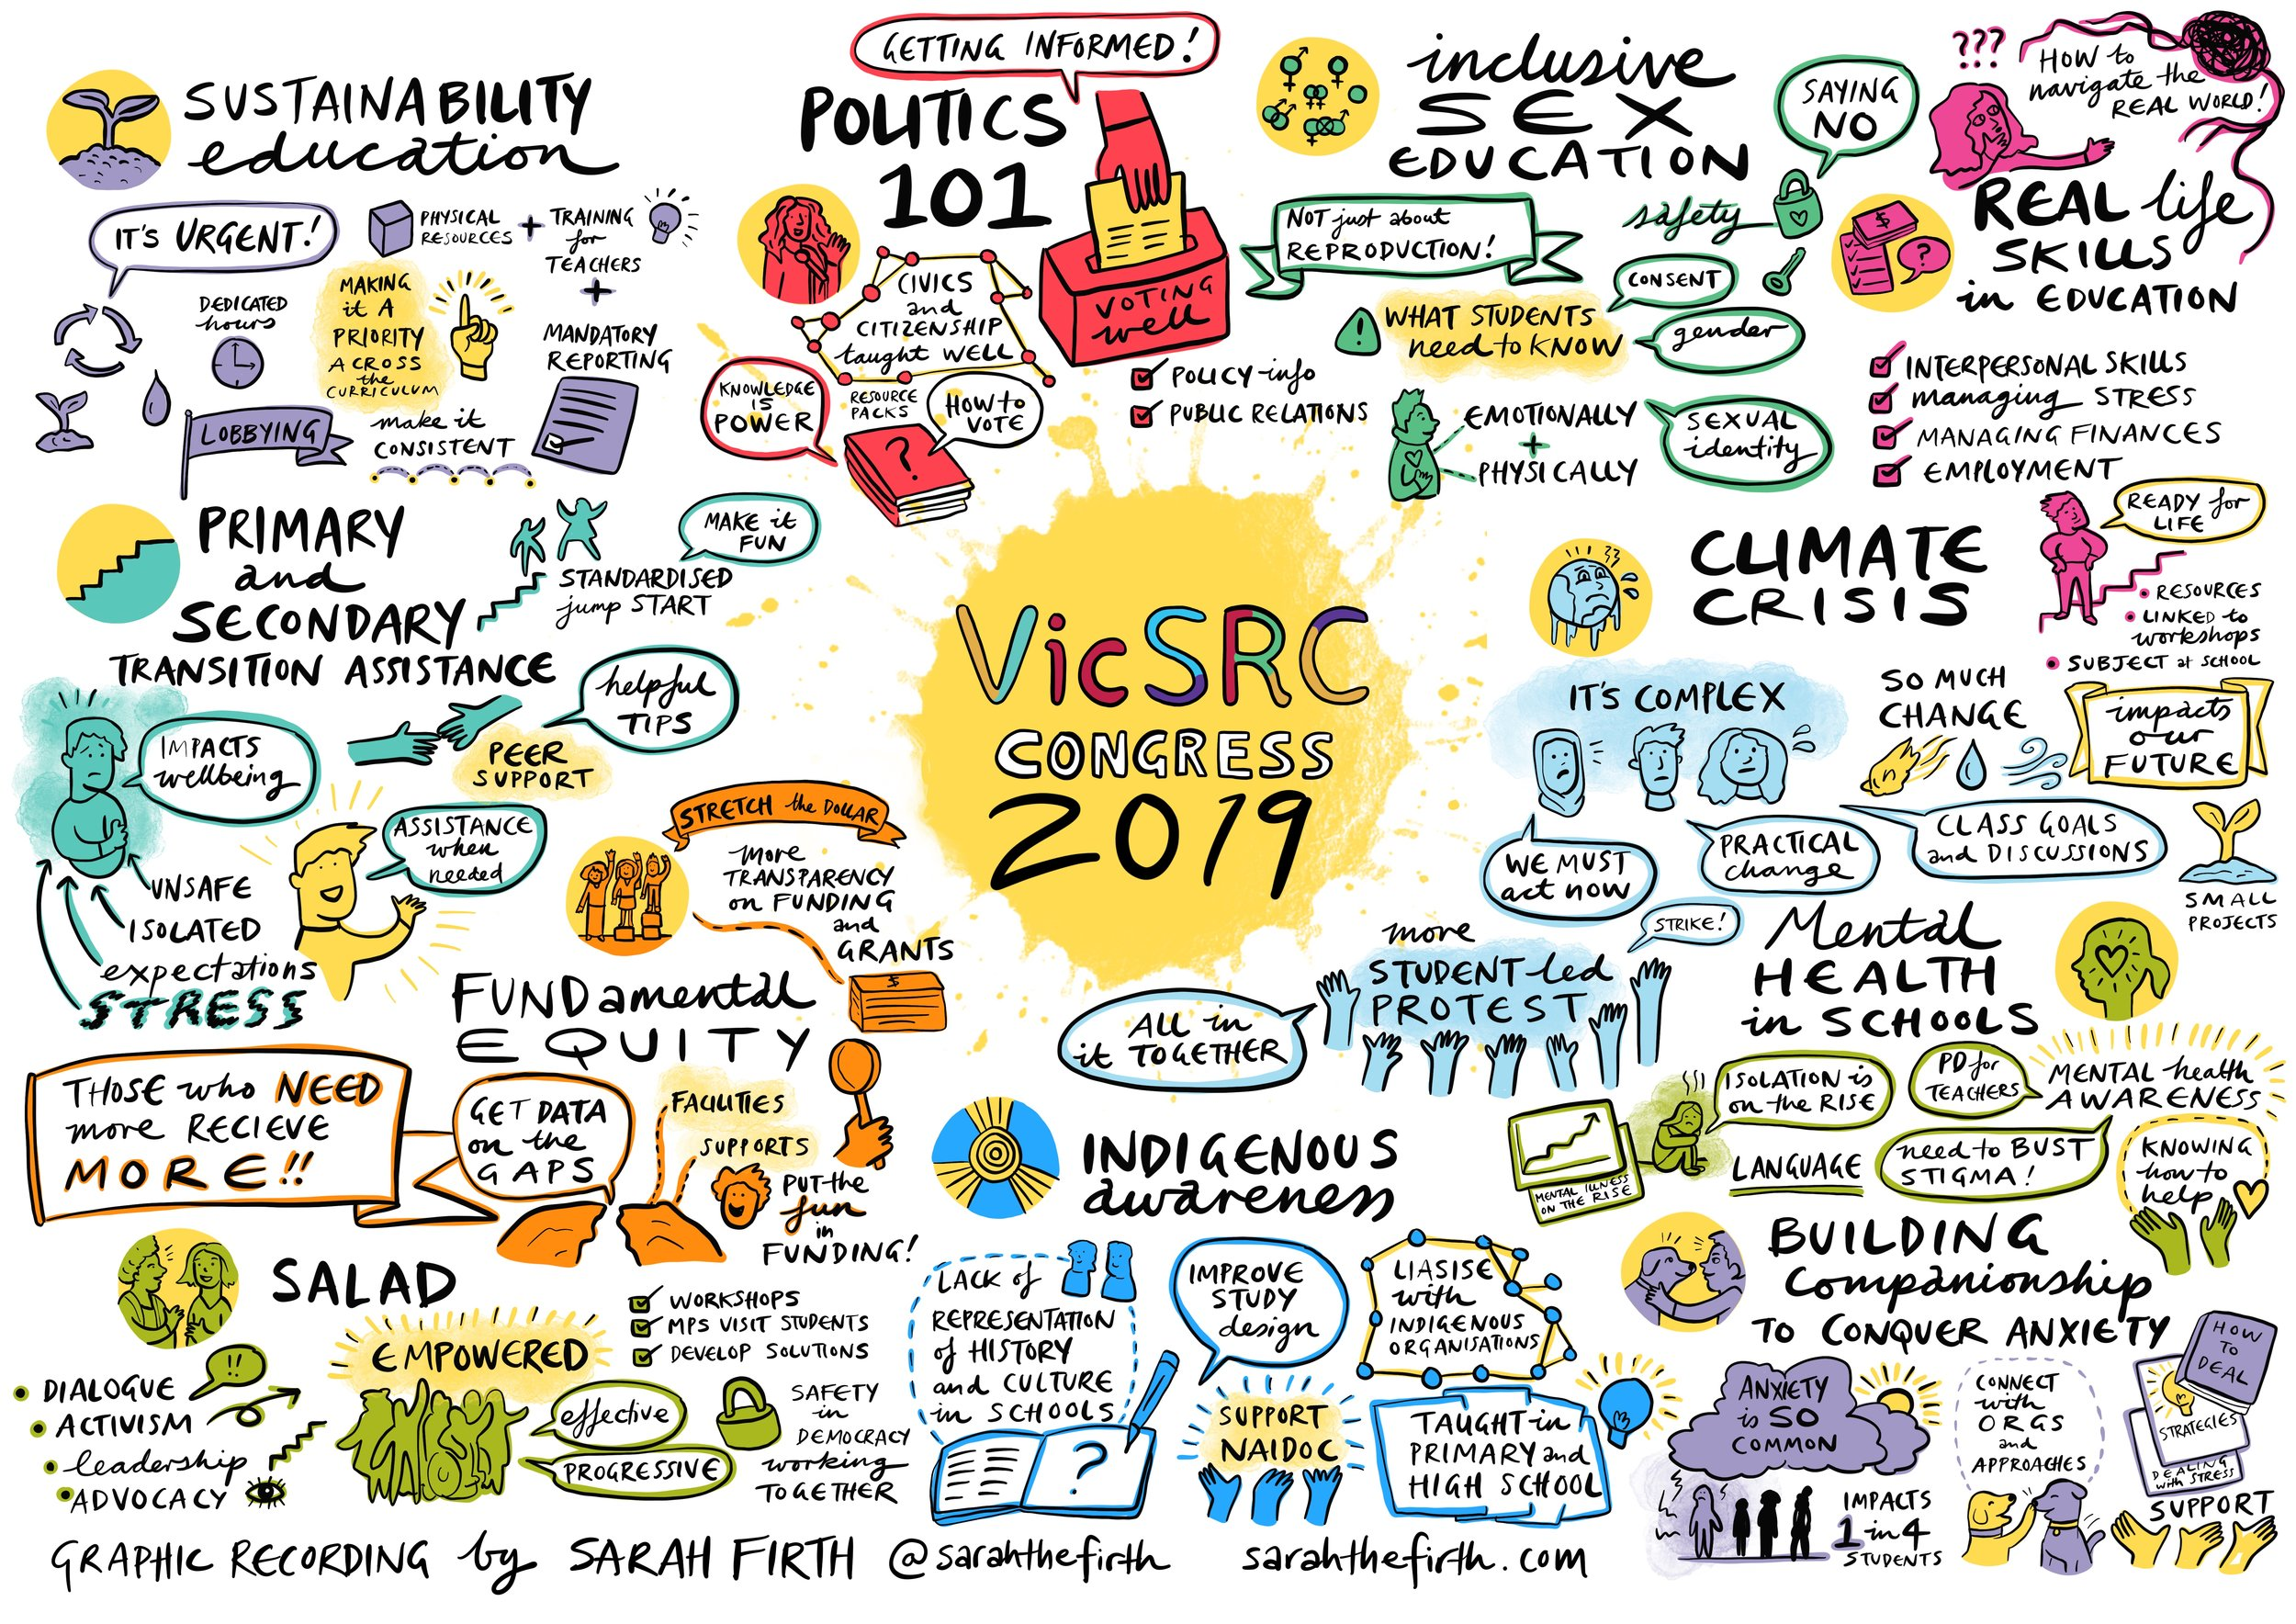 VicSRC_Congress_2019.jpg